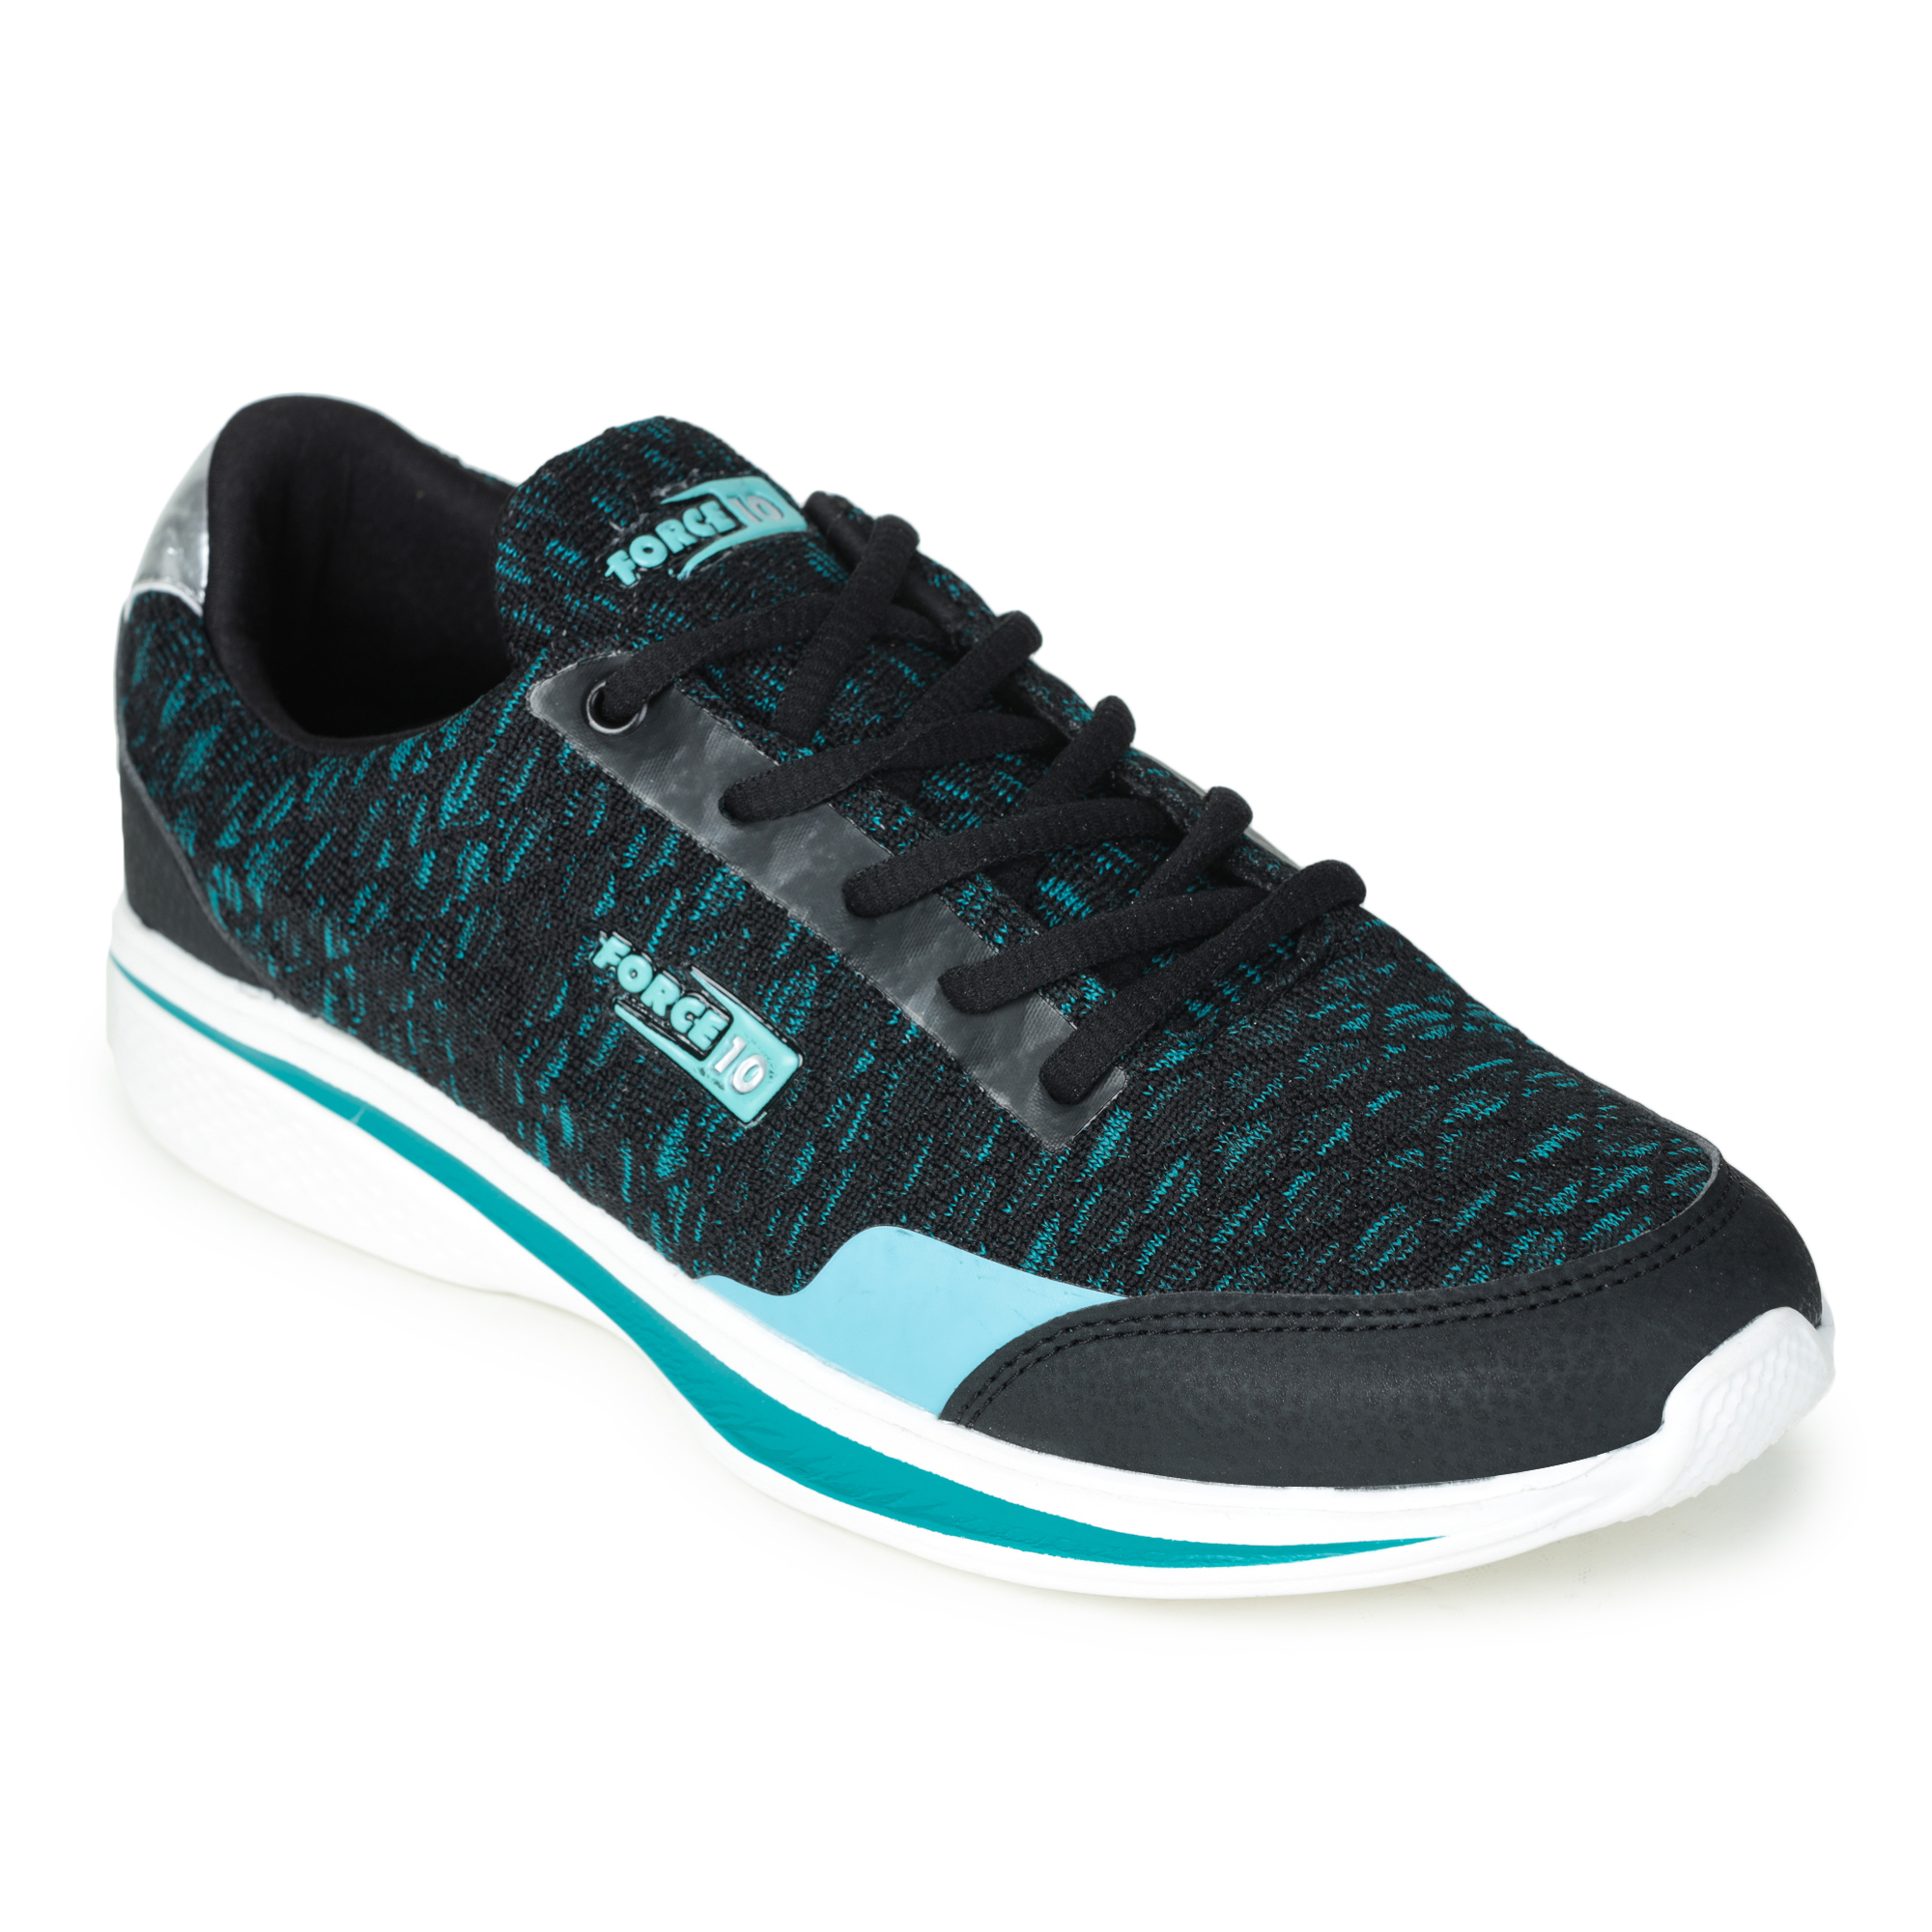 Liberty   Liberty FORCE 10 Outdoor Sports Shoes NIARA-1_S.GREEN For - Women